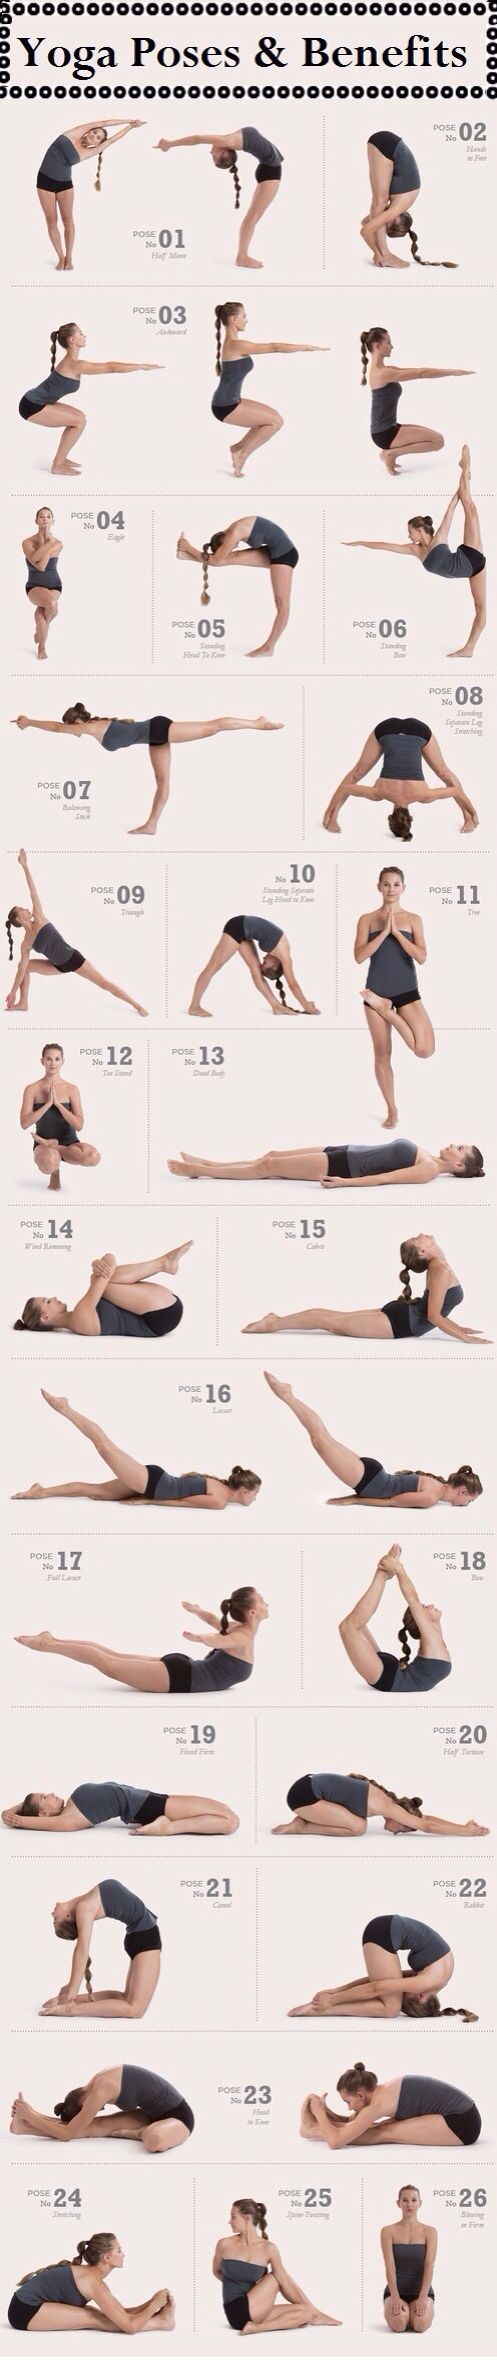 Beautiful bikram yoga demos. Practicing these before I go to the class in 95degrees